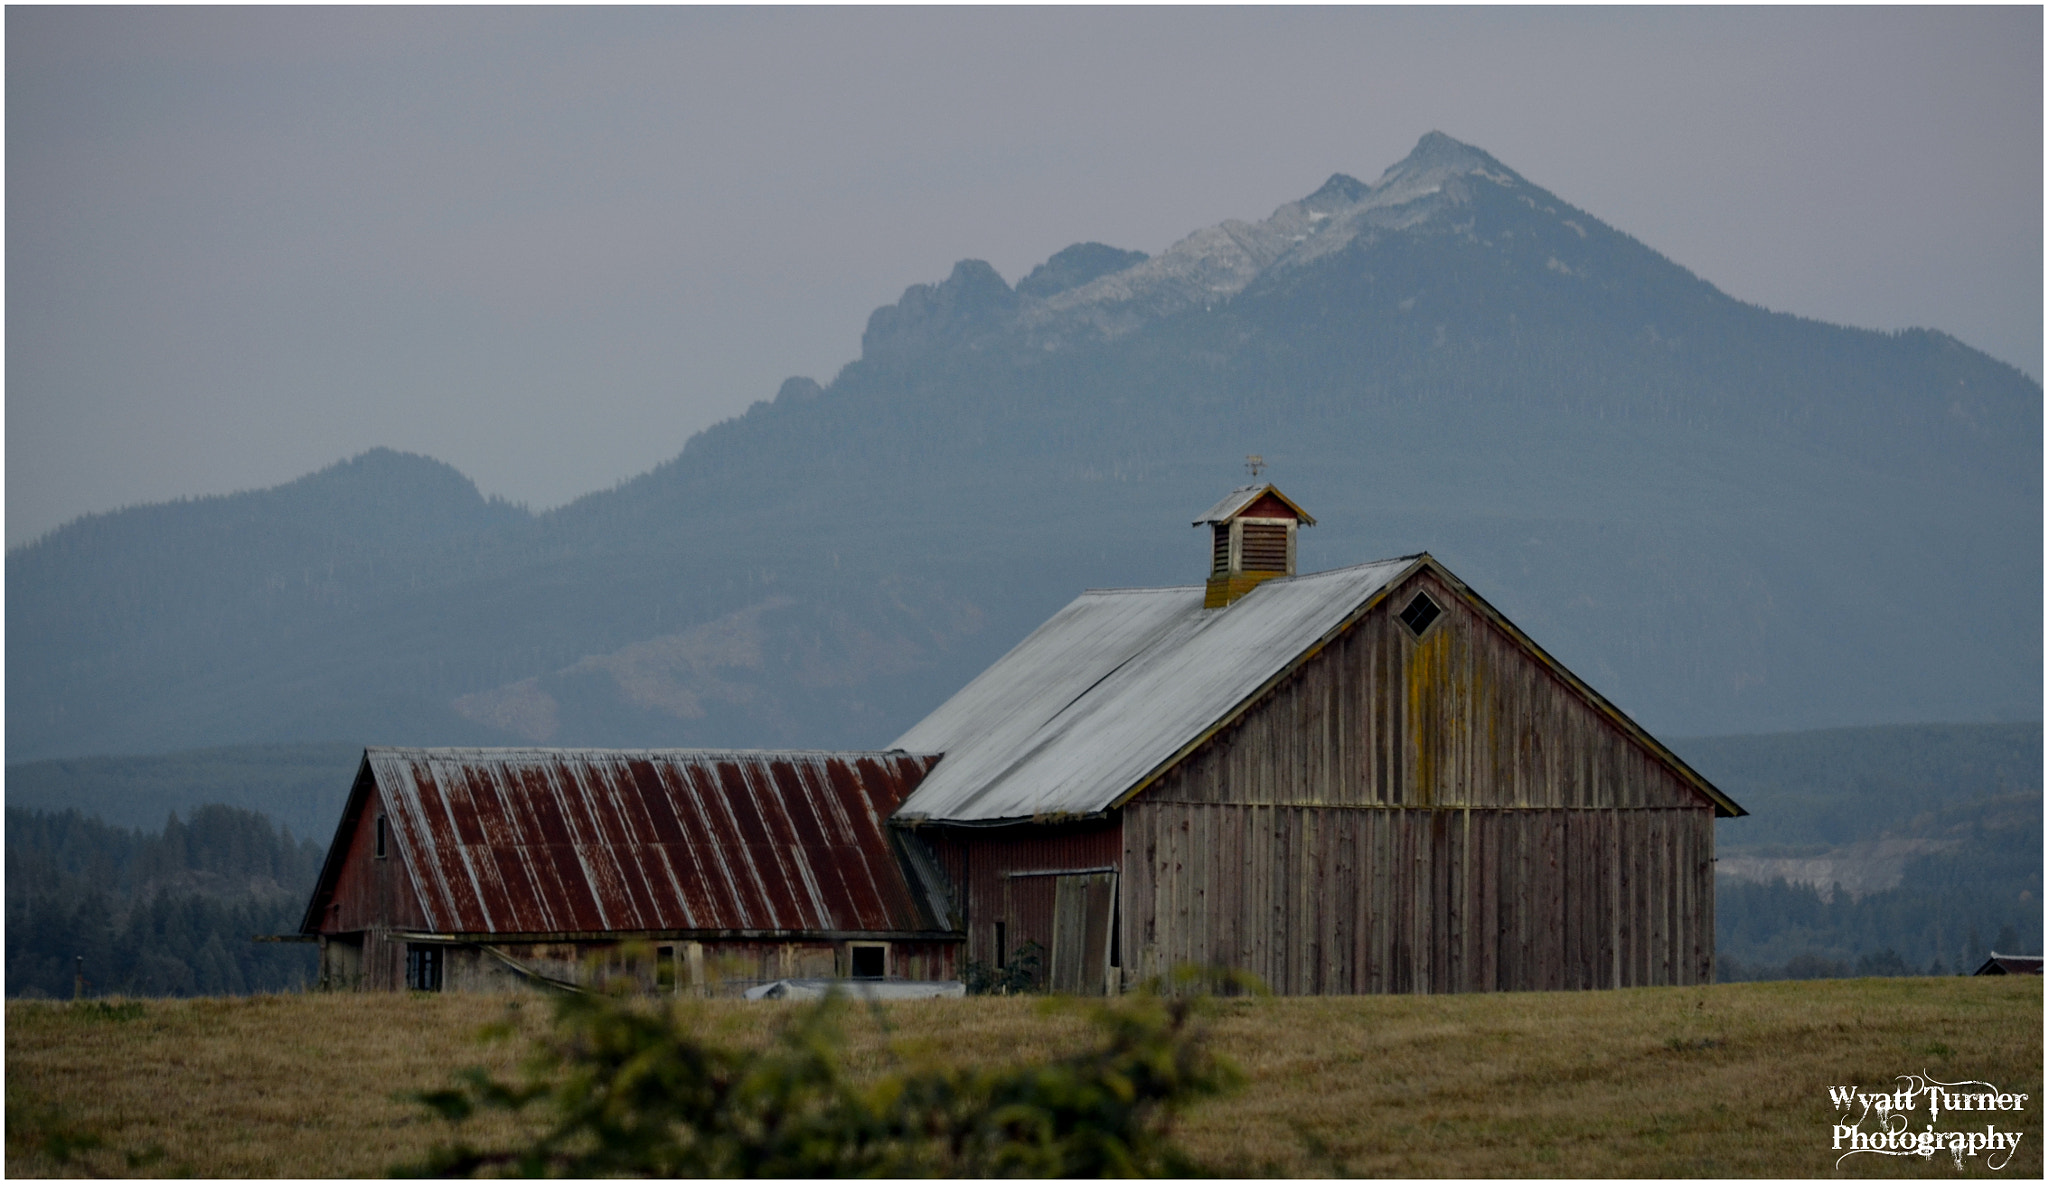 Photograph Pilchuck Barn by Wyatt Turner on 500px